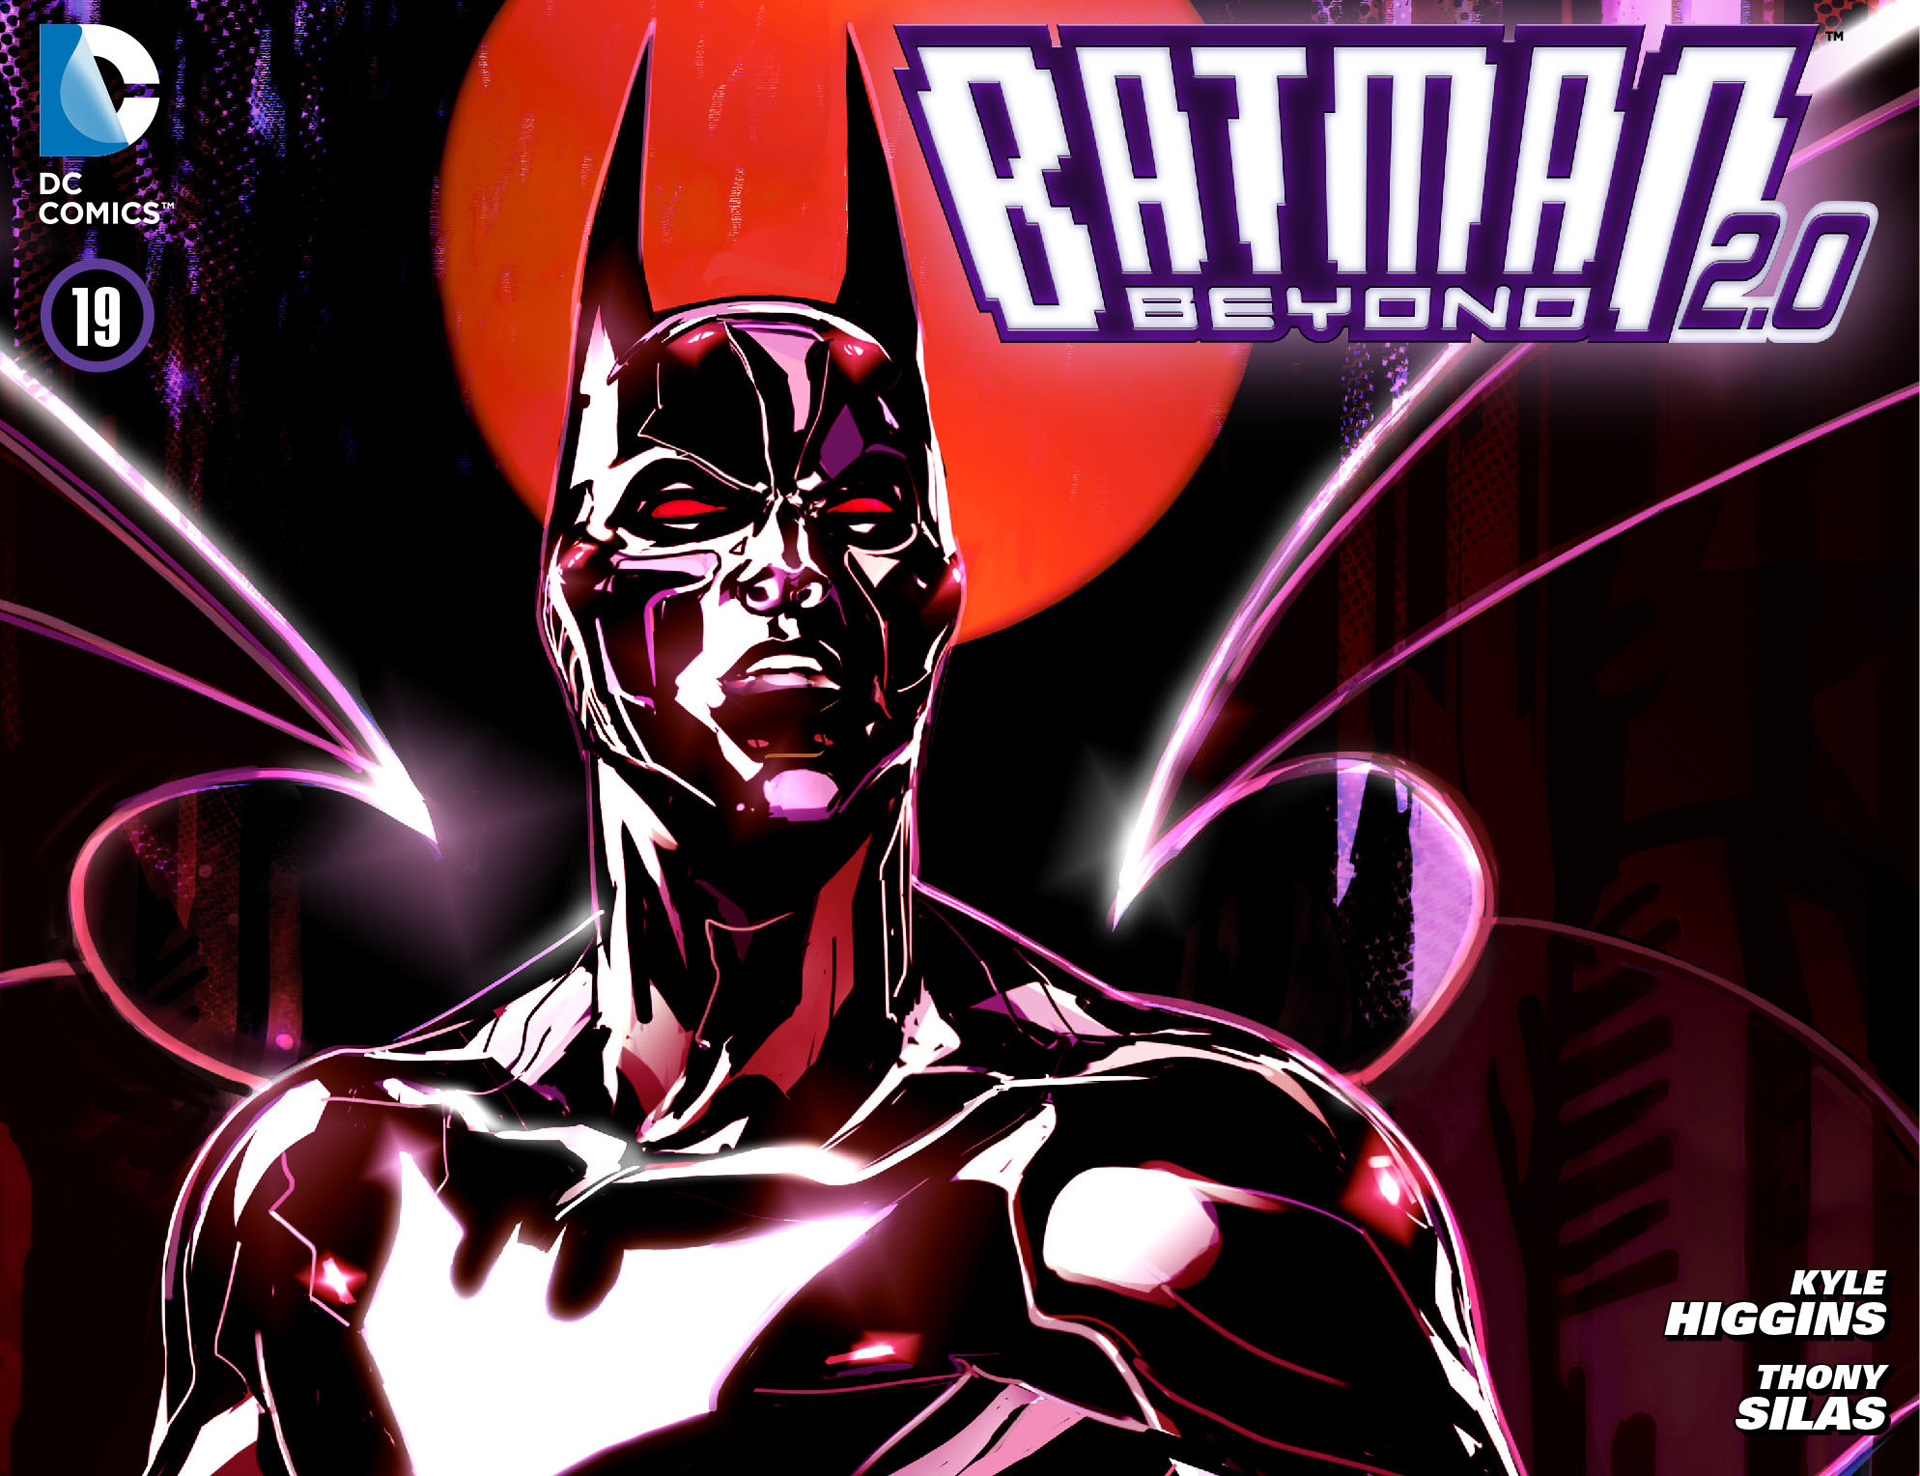 Batman Beyond 2.0 Issue #19 #19 - English 1